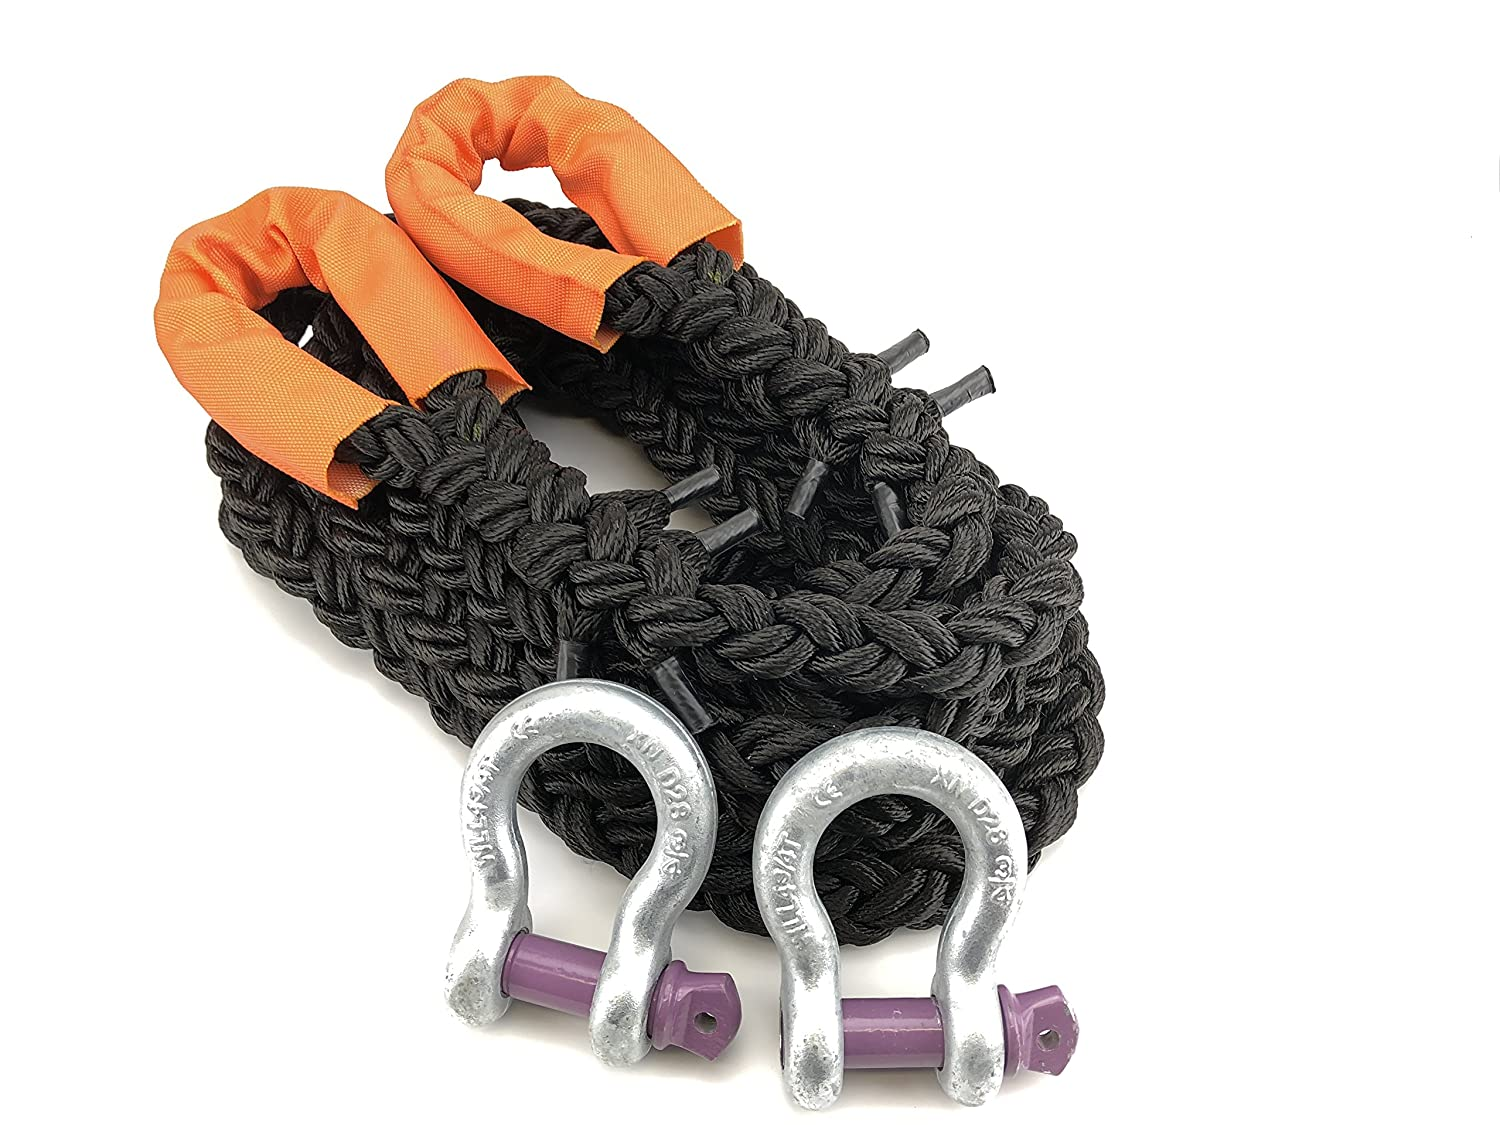 With 2 x 4.75 Tonne Shackles K.E.R.R RopeServices UK 24mm 4x4 8 Strand Black Nylon Kinetic Recovery Tow Rope x 5 Metres